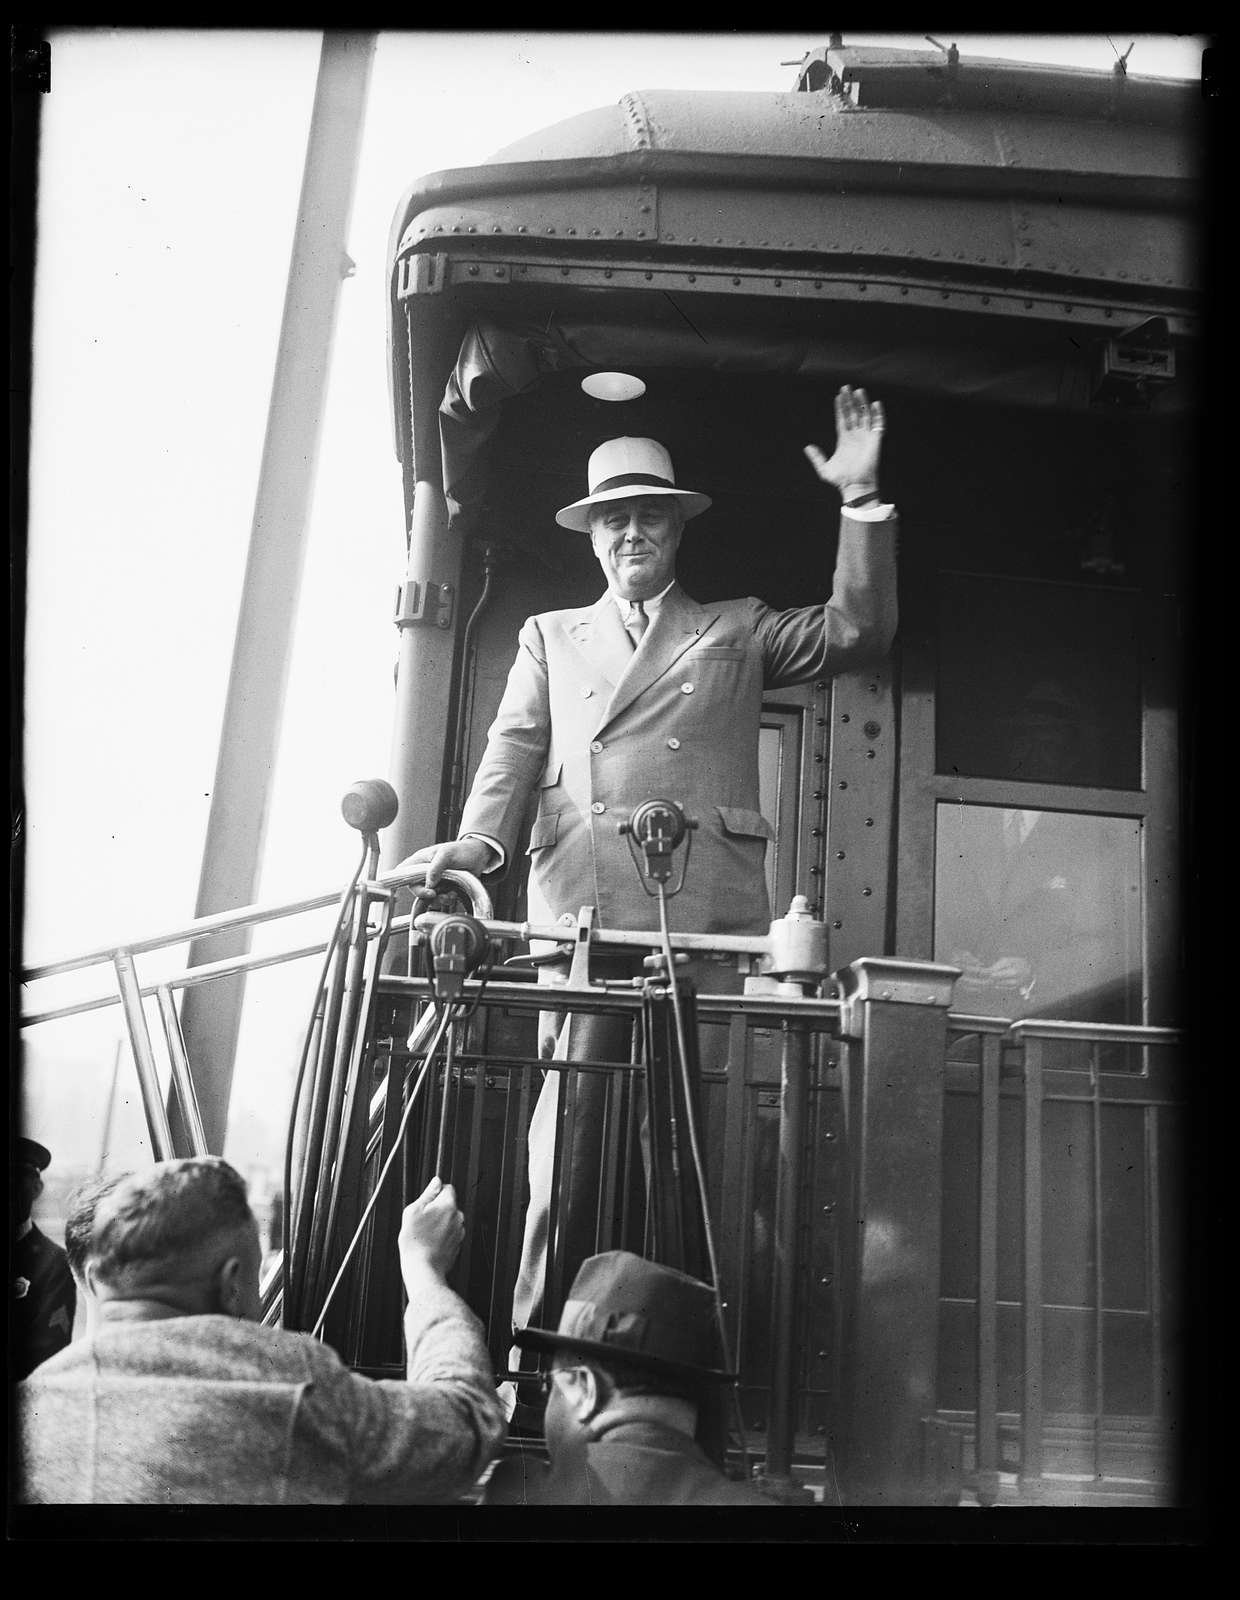 ROOSEVELT BACK FROM VACATION. RETURNING FROM HIS SUMMER WHITE HOUSE AT HYDE PARK, PRESIDENT ROOSEVELT IS CAPABLE OF SMILING DESPITE THE JUMBLED CONDITION OF HIS 'HOUSE OF LETTERS': NRA, AAA, ETC